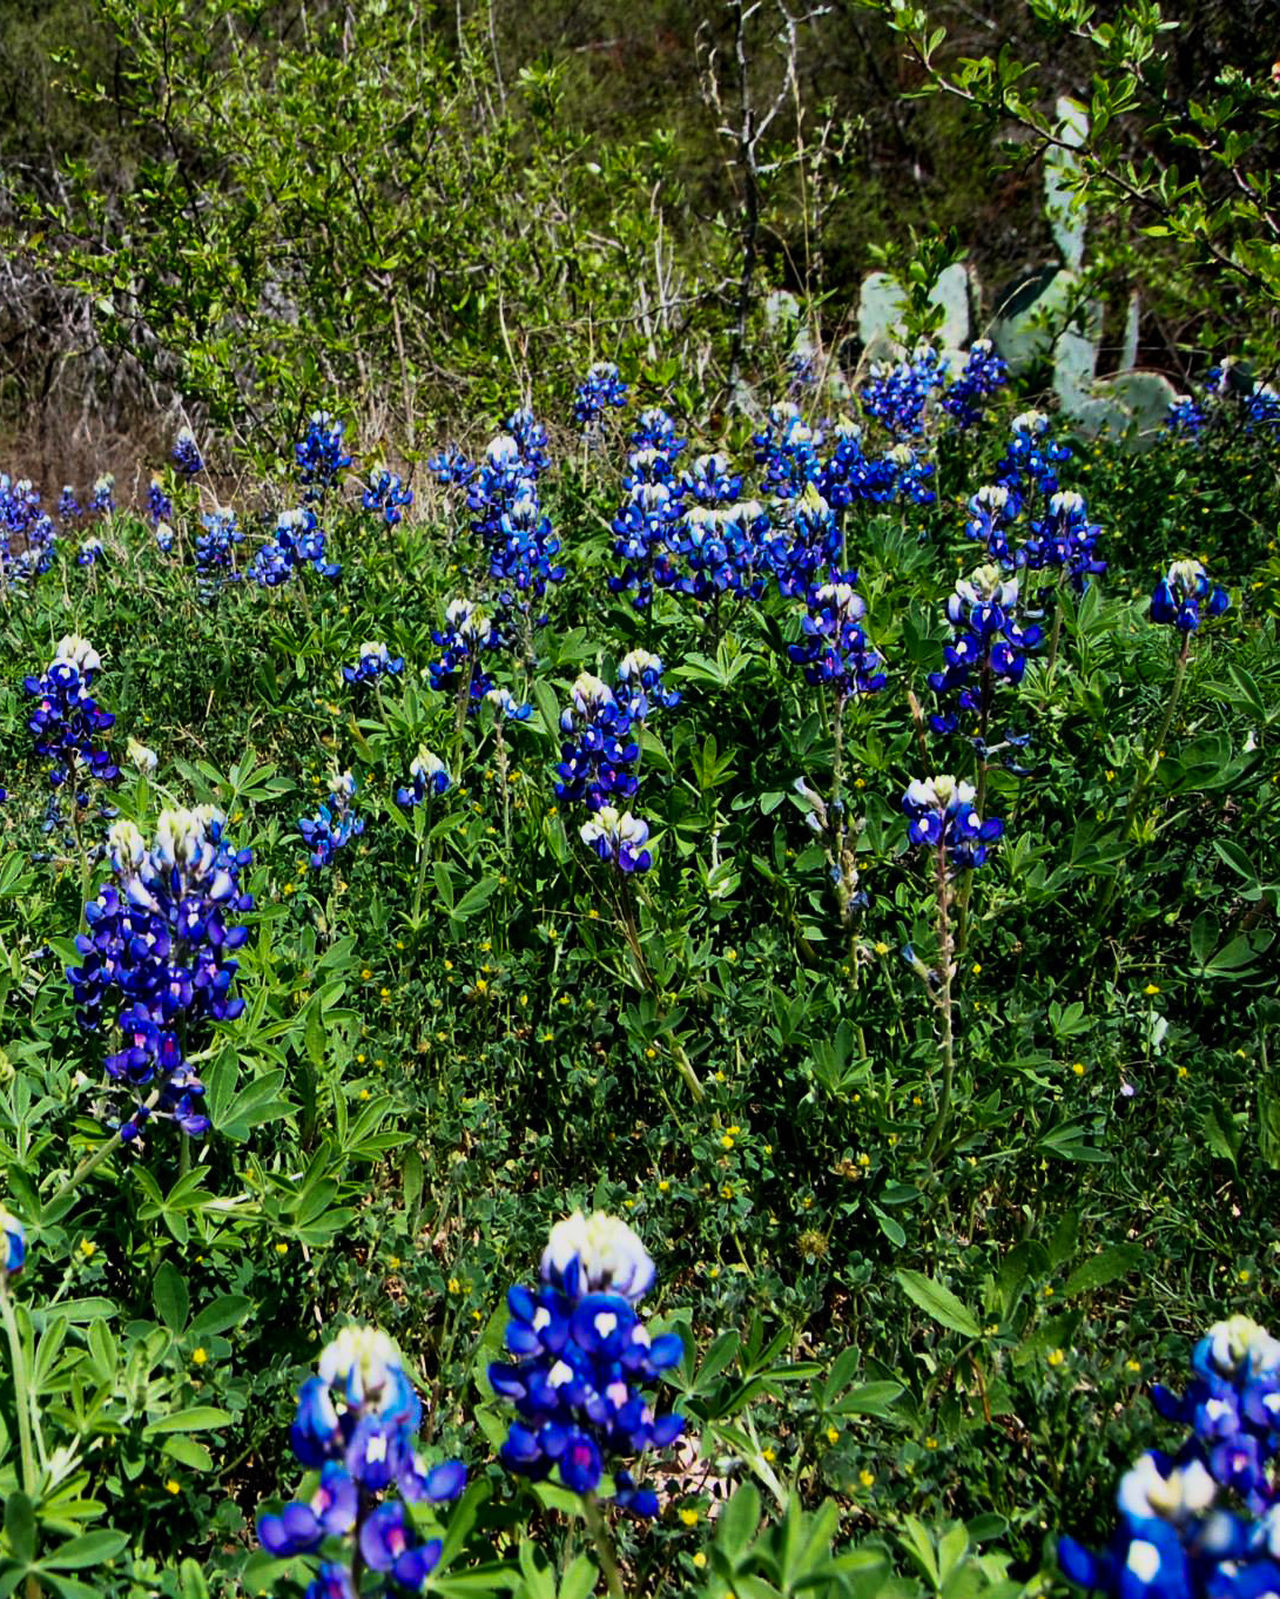 Austin Austin Texas Beauty In Nature Blue Bluebonnets Flower Growth Hill Country Hill Country Texas Nature Outdoors Purple Rural America Spring Spring Flowers Spring Into Spring Springtime Texas Texas Bluebonnet Texas Bluebonnets Texas Hill Country Texas Landscape Travel Travel Destinations Travel Photography